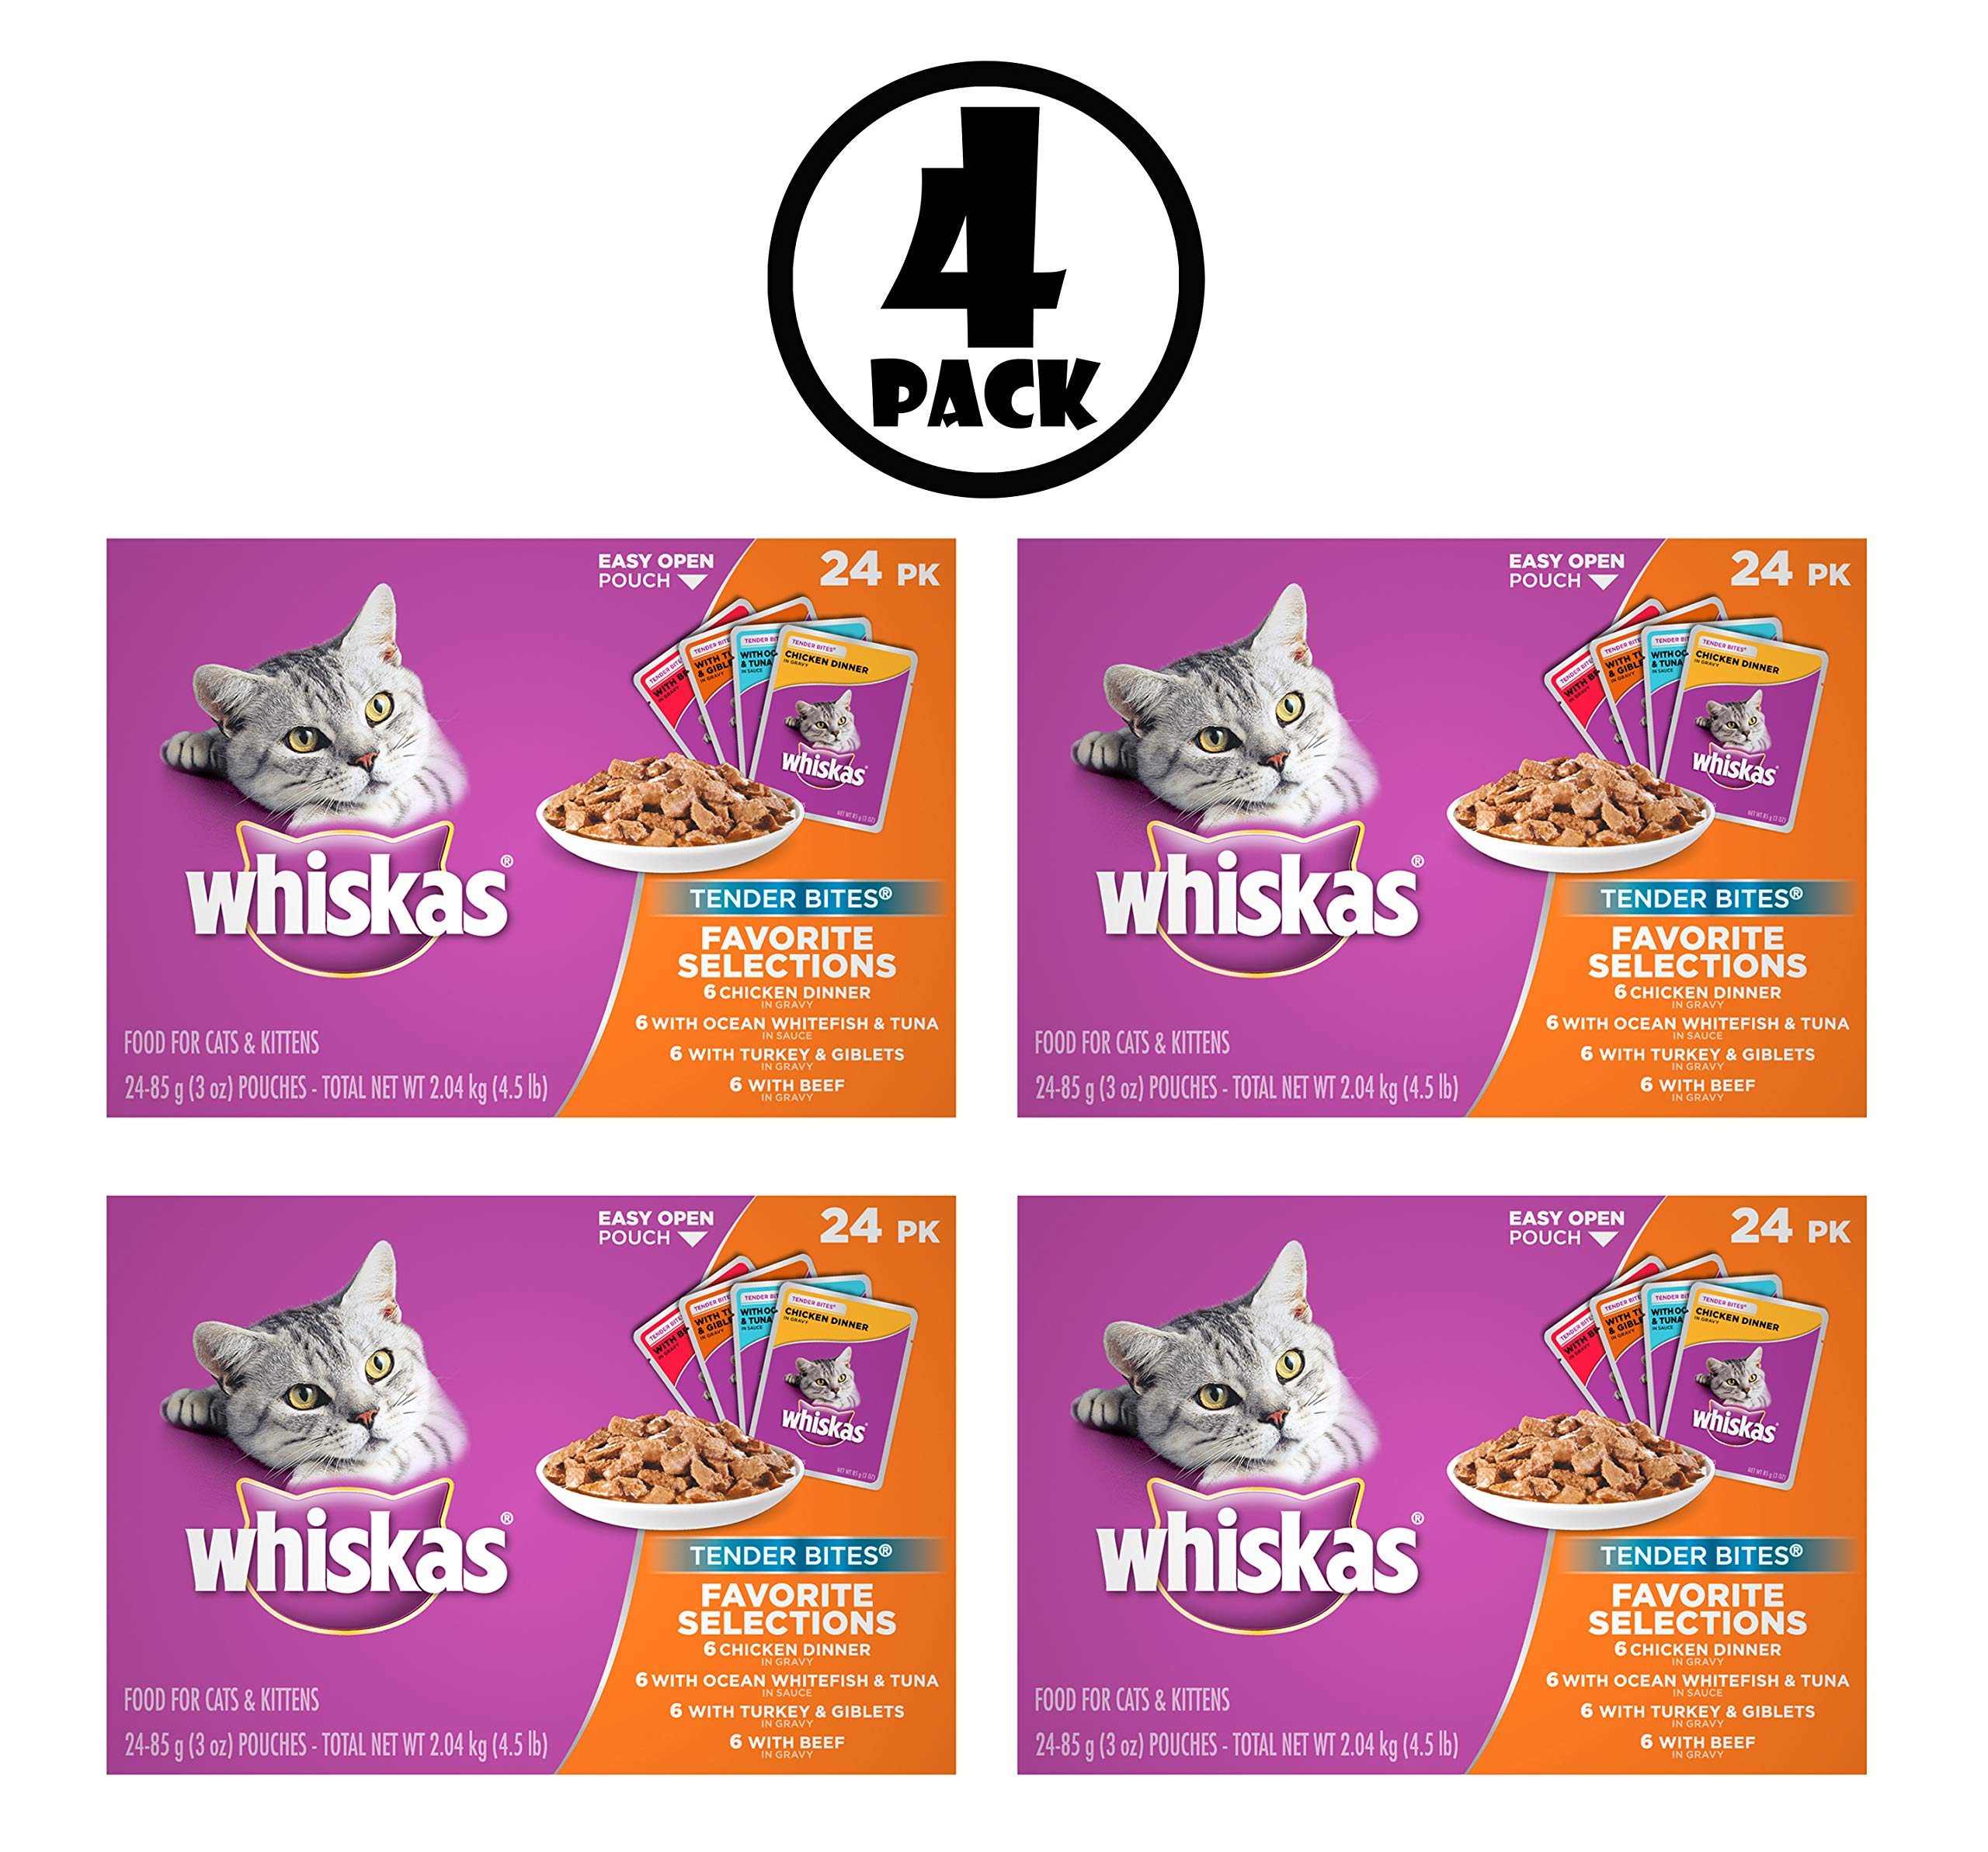 Whiskas Tender Bites Favorite Selections Variety Pack Wet Cat Food, (24) 3 oz. Pouches, Pack of 4 by Whiskas